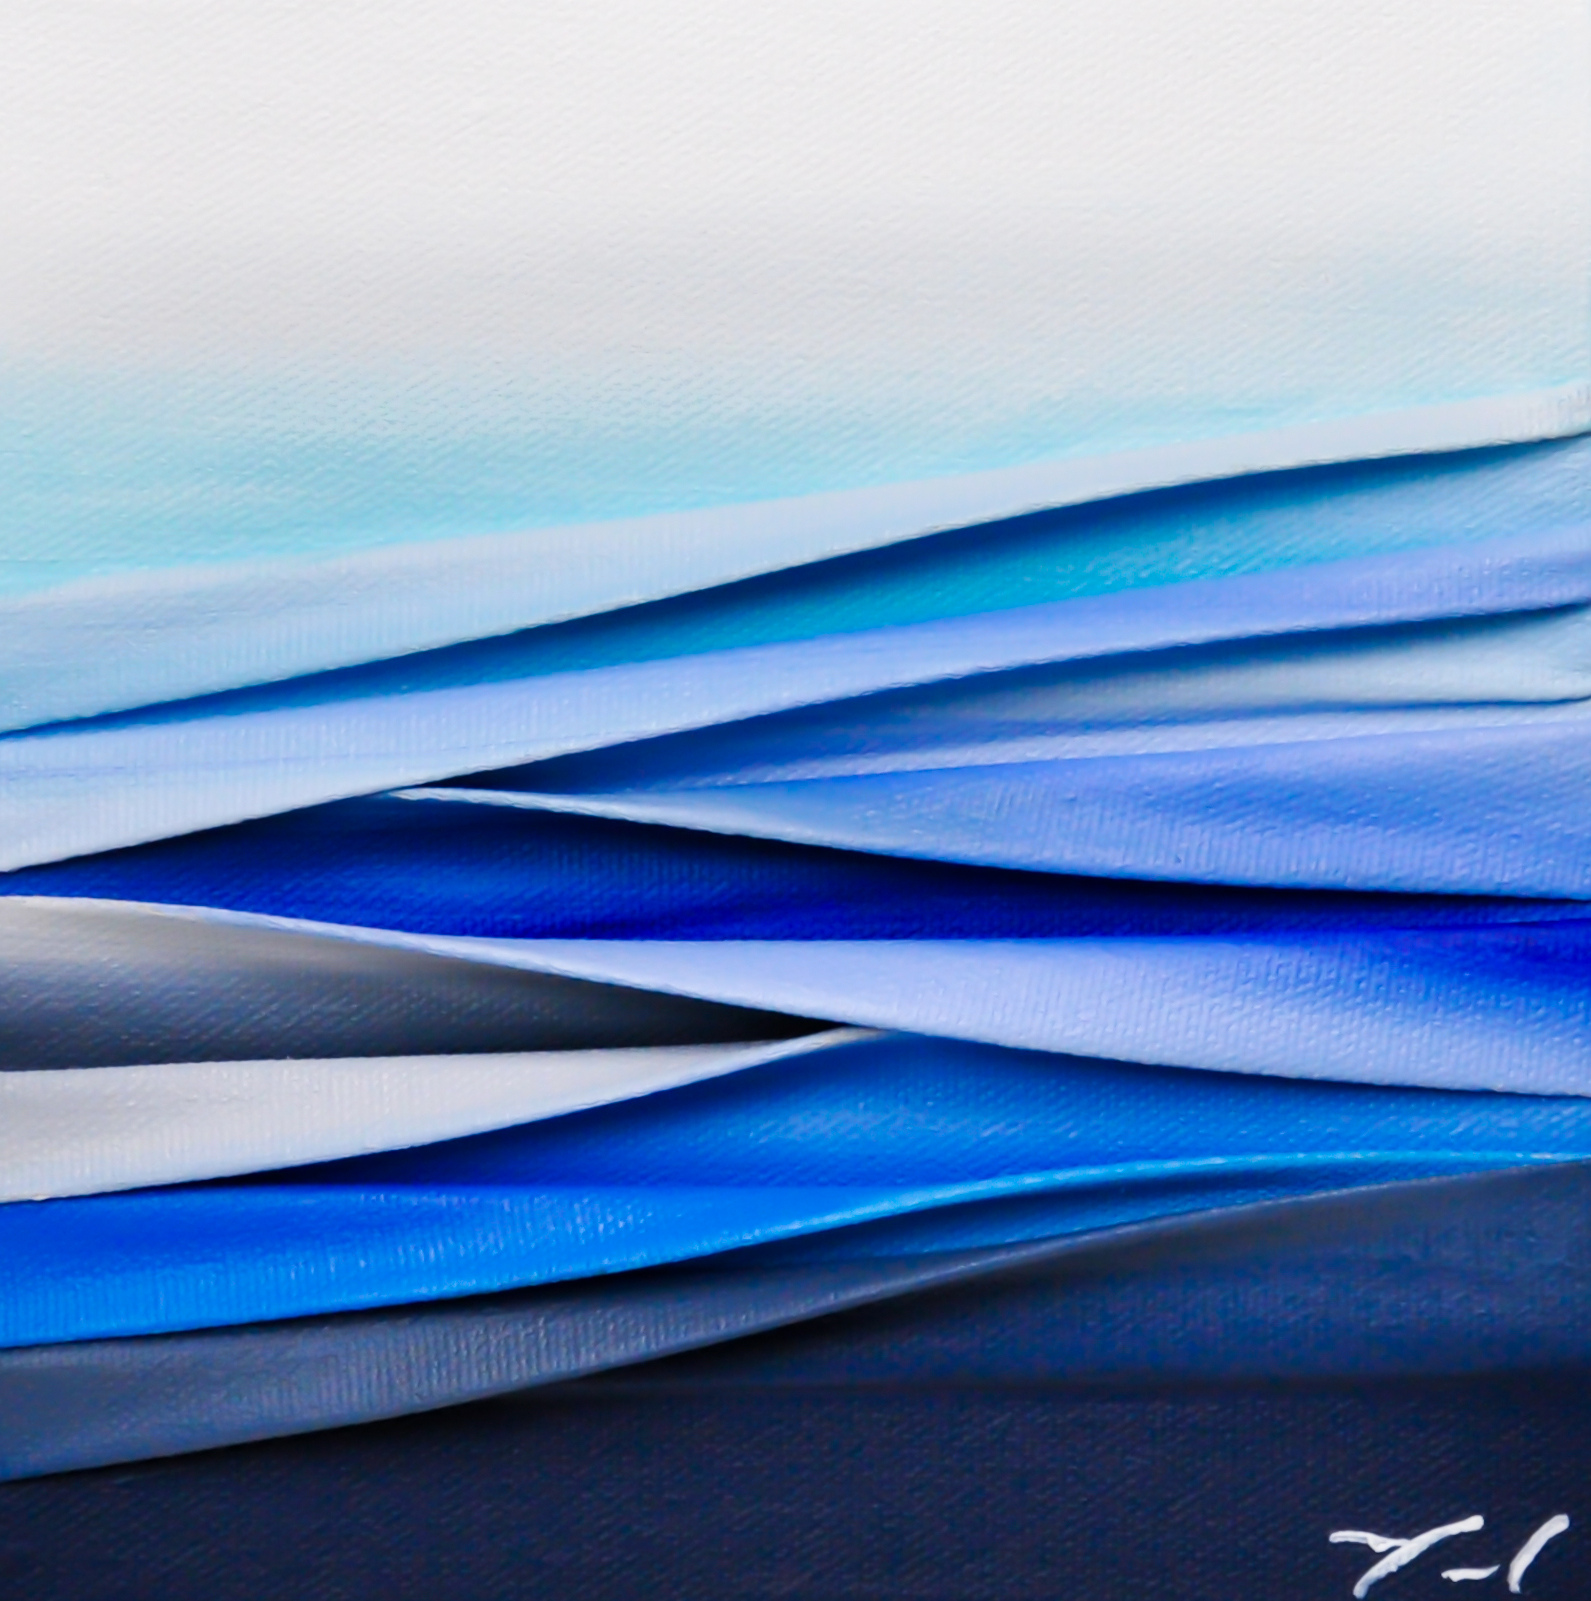 Ces jours blancs, mixed media painting by Melanie Giguere | Effusion Art Gallery + Cast Glass Studio, Invermere BC